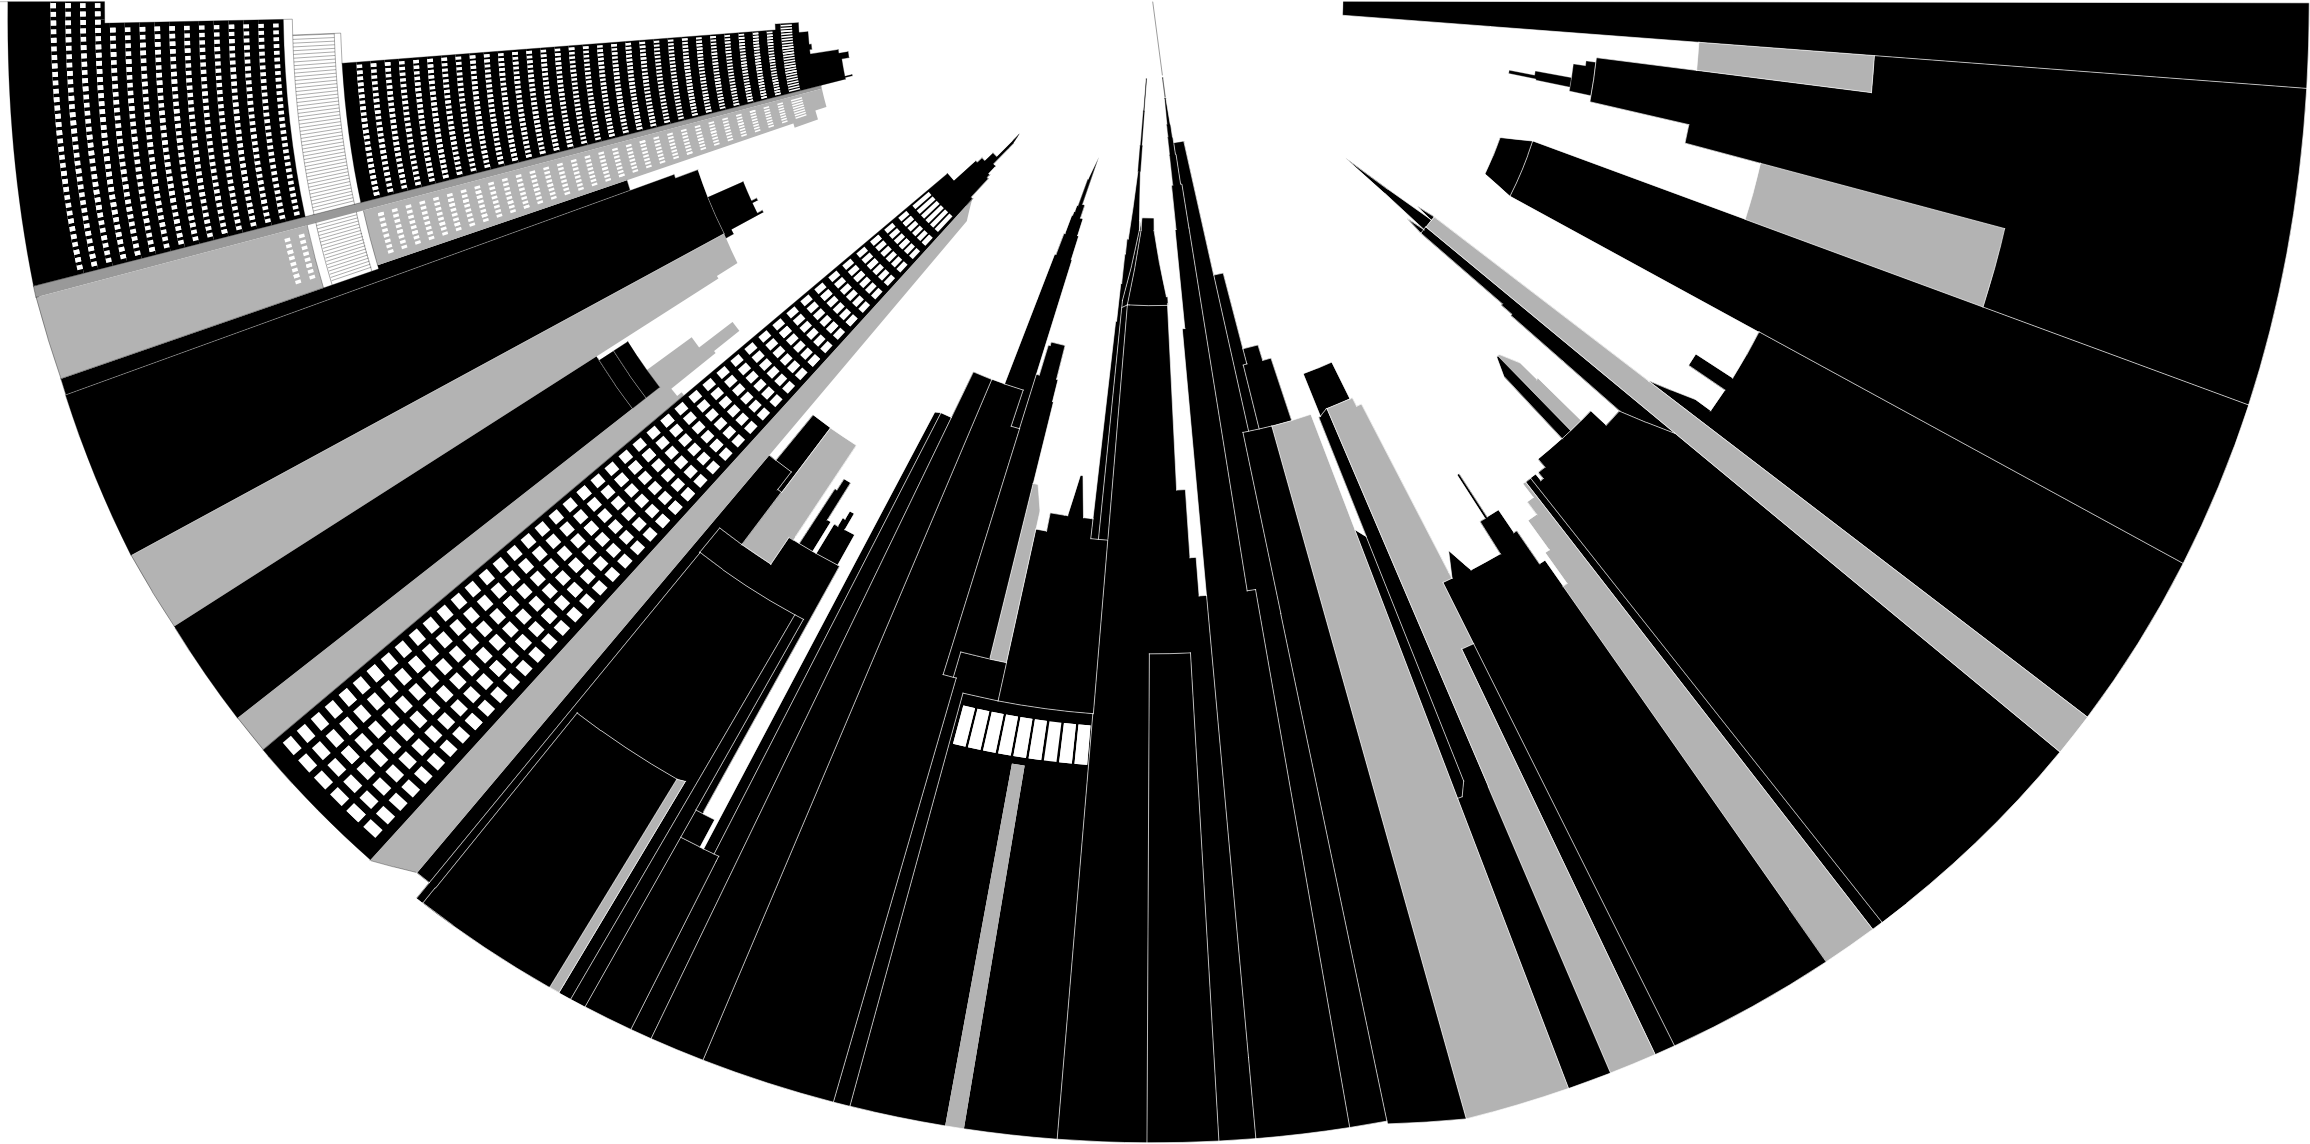 Distorted city skyline big. Cityscape clipart building infrastructure